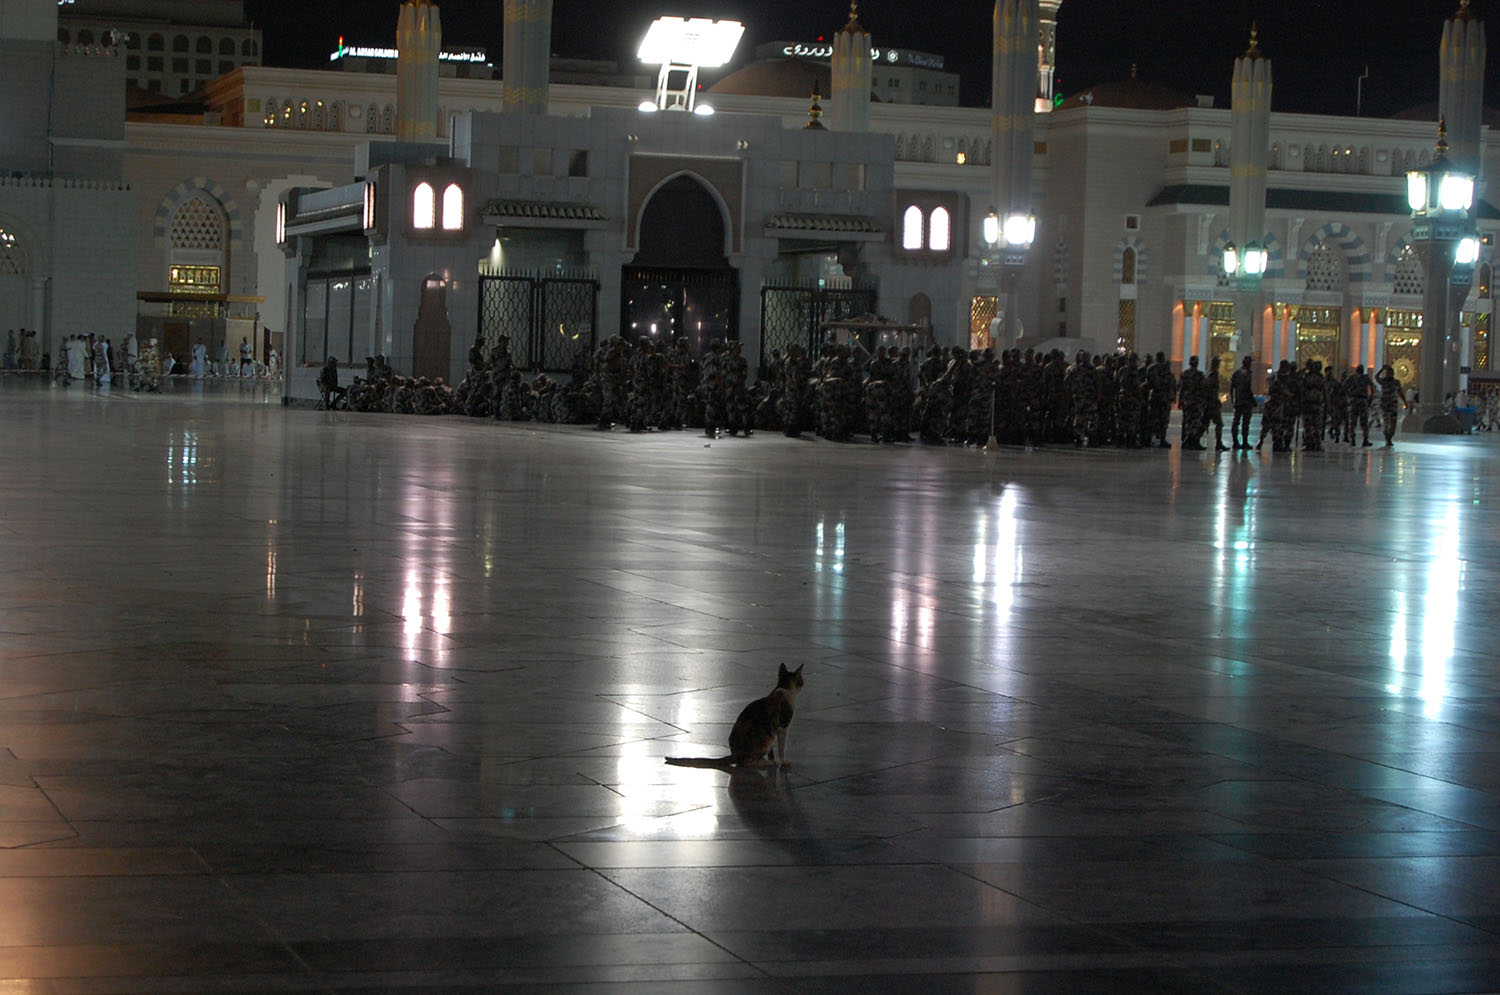 On a Thursday night, very holy to Shias, massive numbers of Saudi police cordon off entire areas of the Masjid al-Nabi to prevent the Shias from gathering.